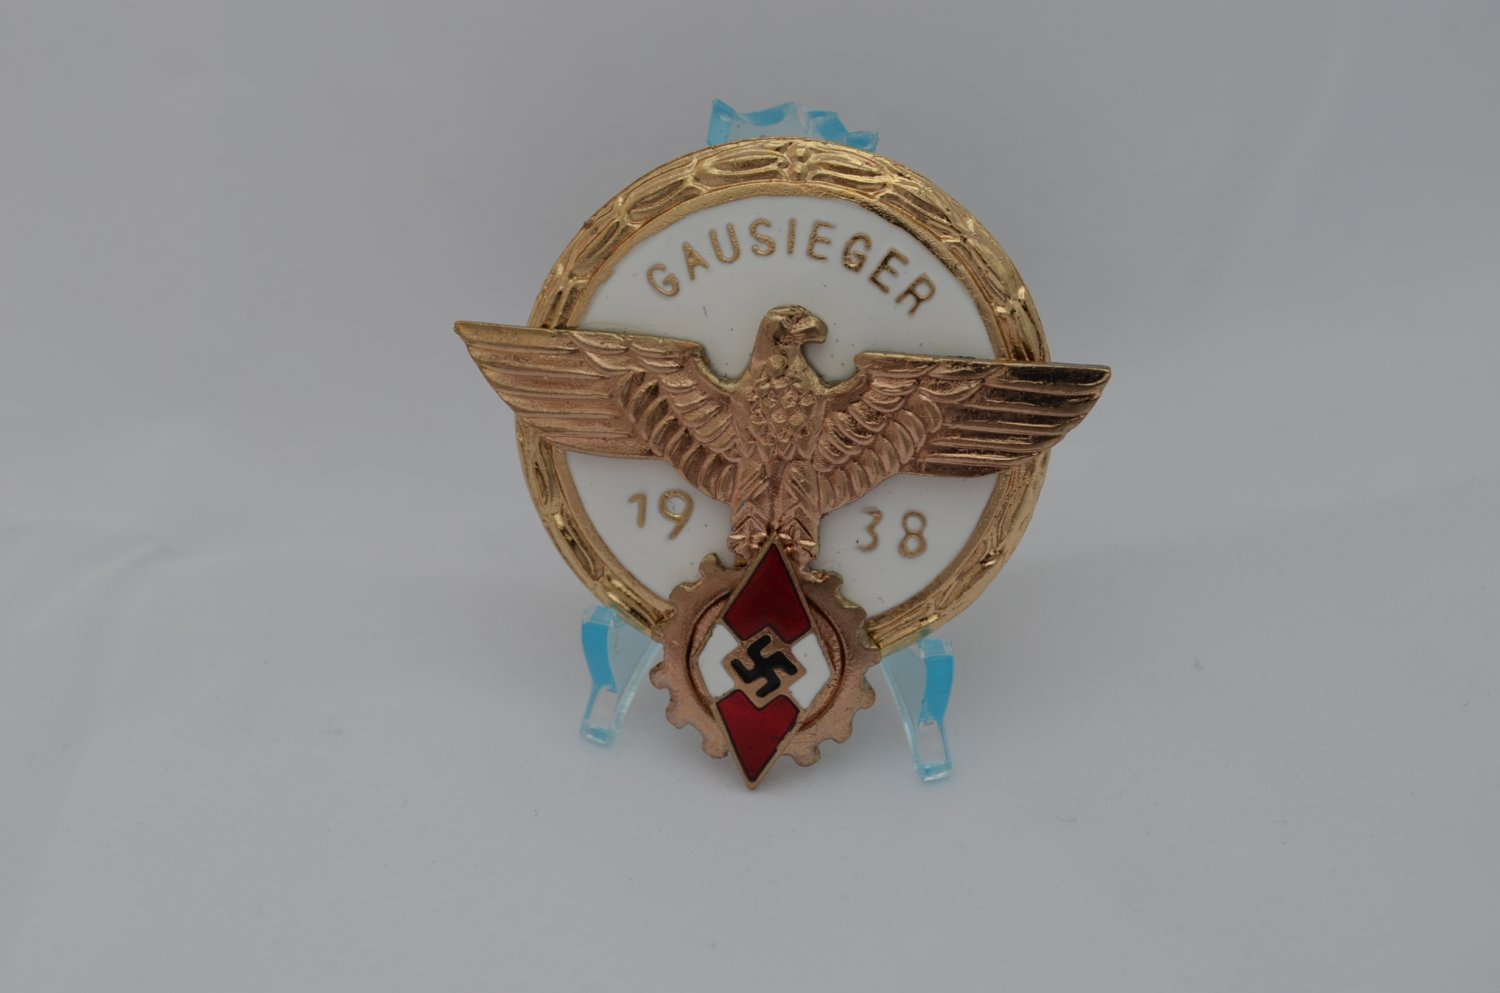 WWII THE GERMAN GOLD BADGE GAUSIEGER 1938